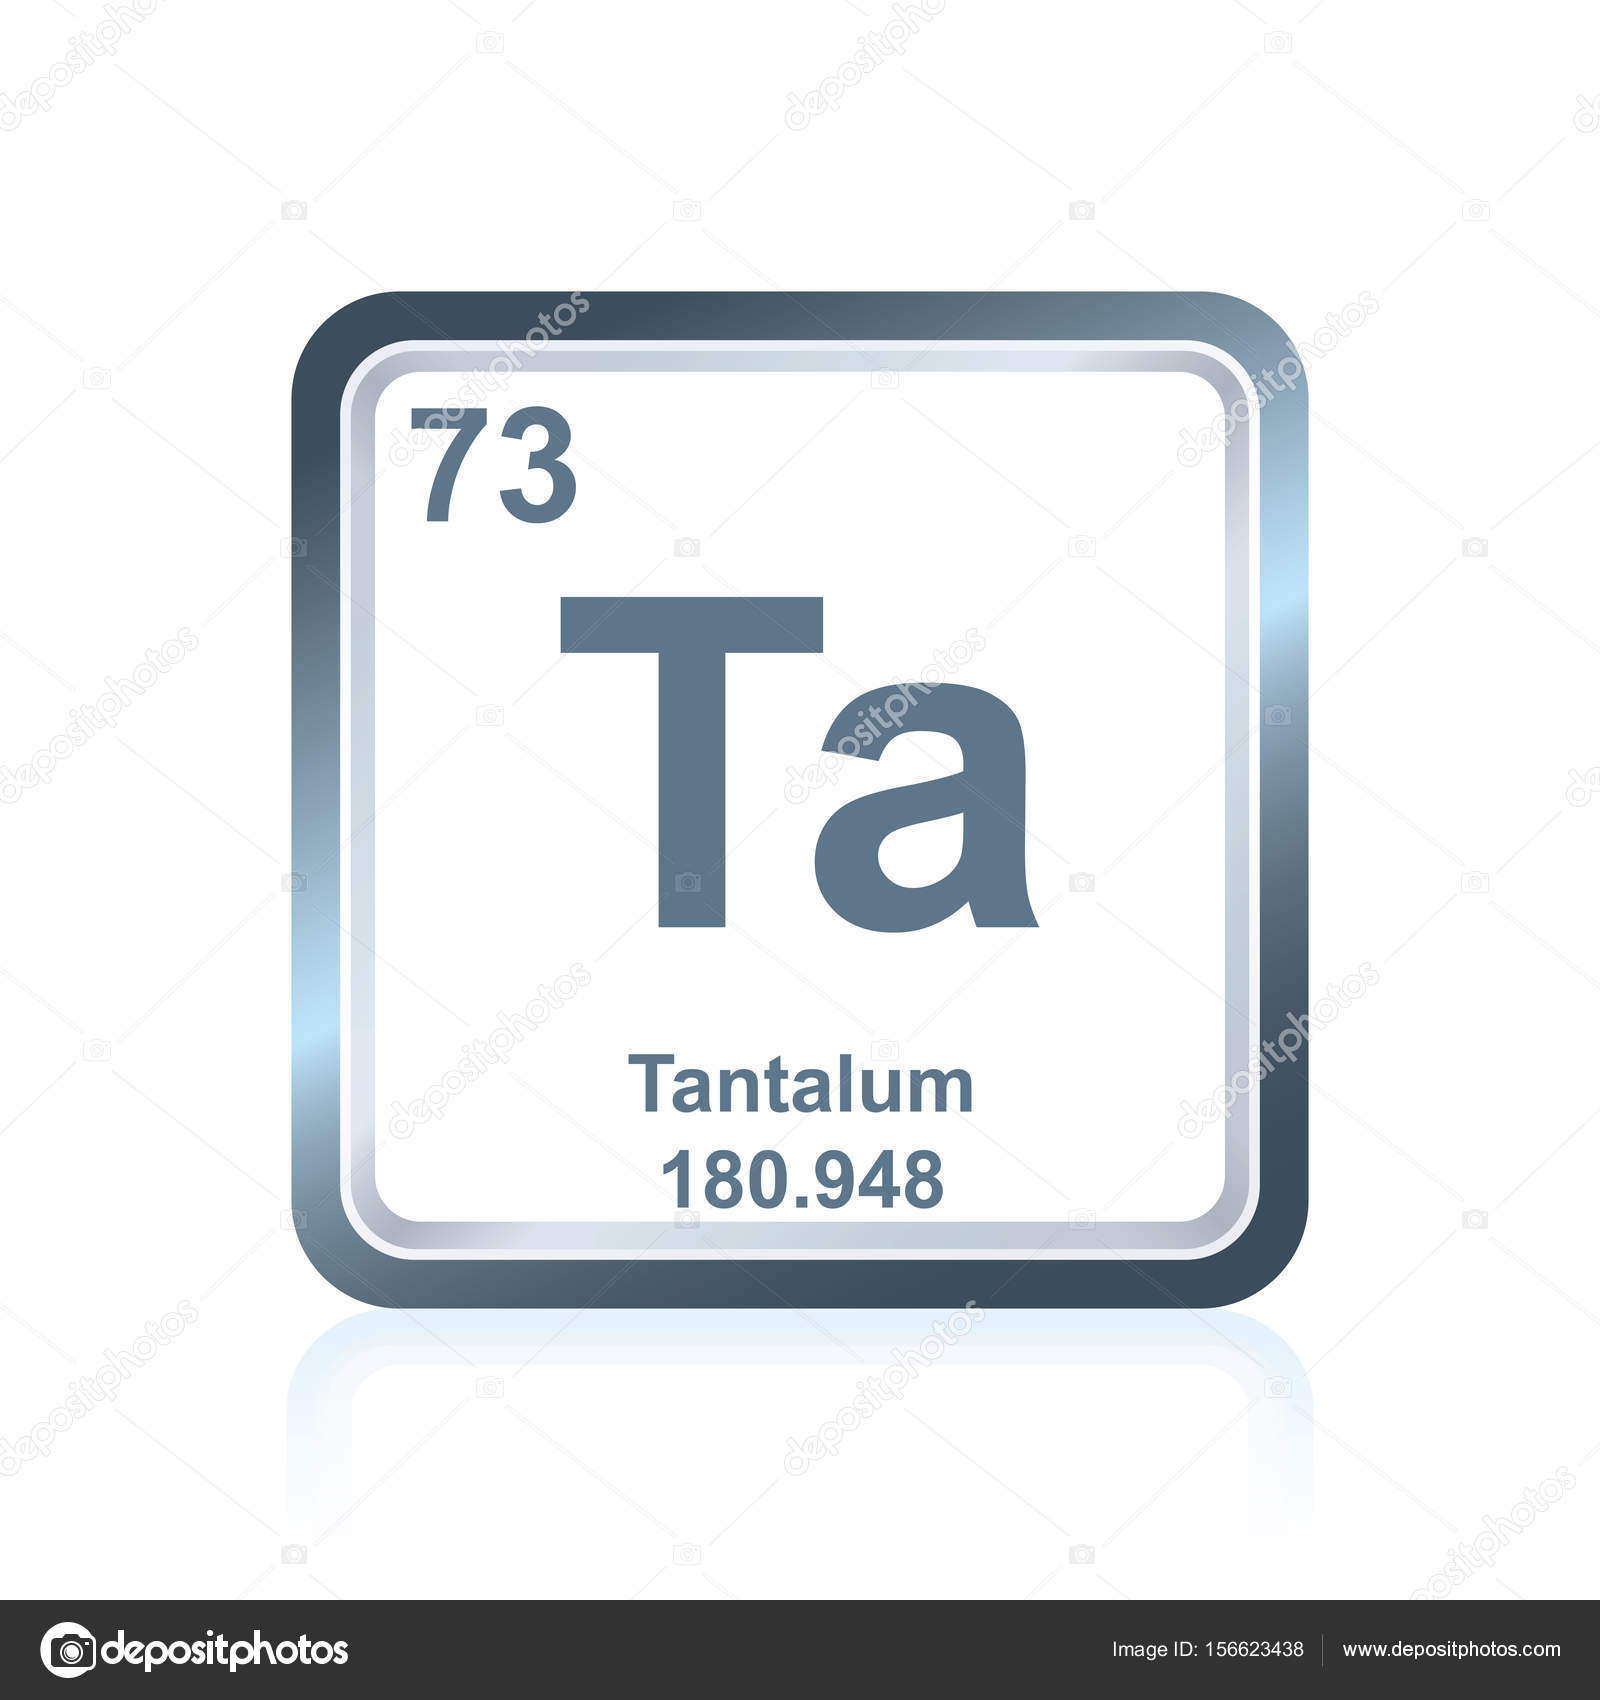 Chemical element tantalum from the periodic table stock vector symbol of chemical element tantalum as seen on the periodic table of the elements including atomic number and atomic weight vector by noedelhap urtaz